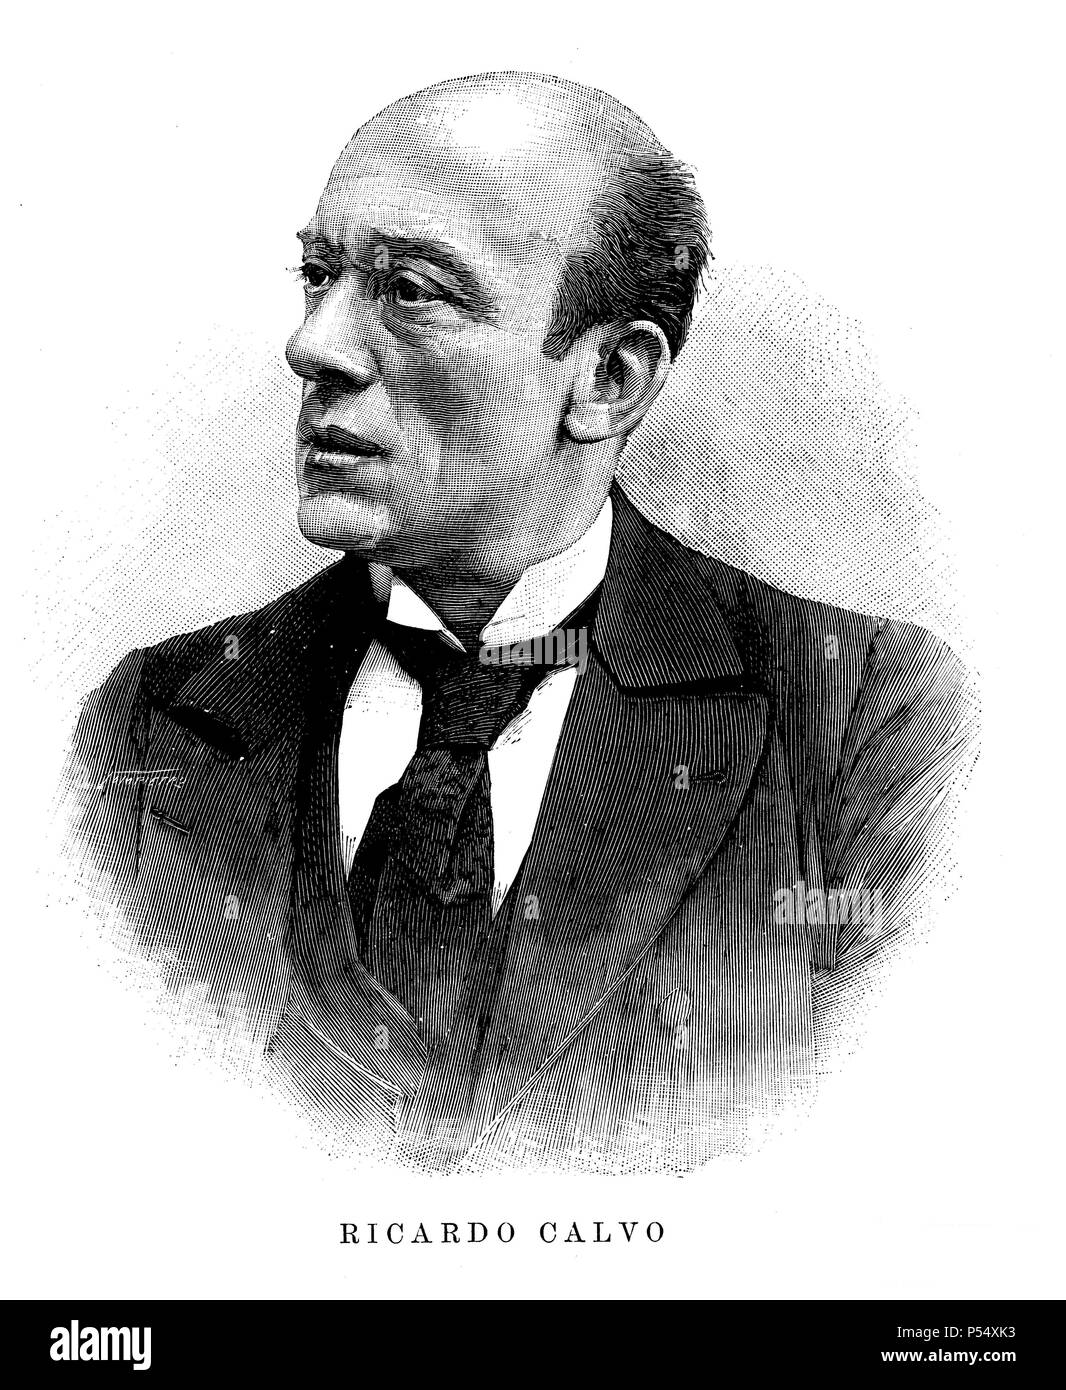 Ricardo Calvo Revilla (1844-1895). Actor español. Grabado de 1895. Stock Photo